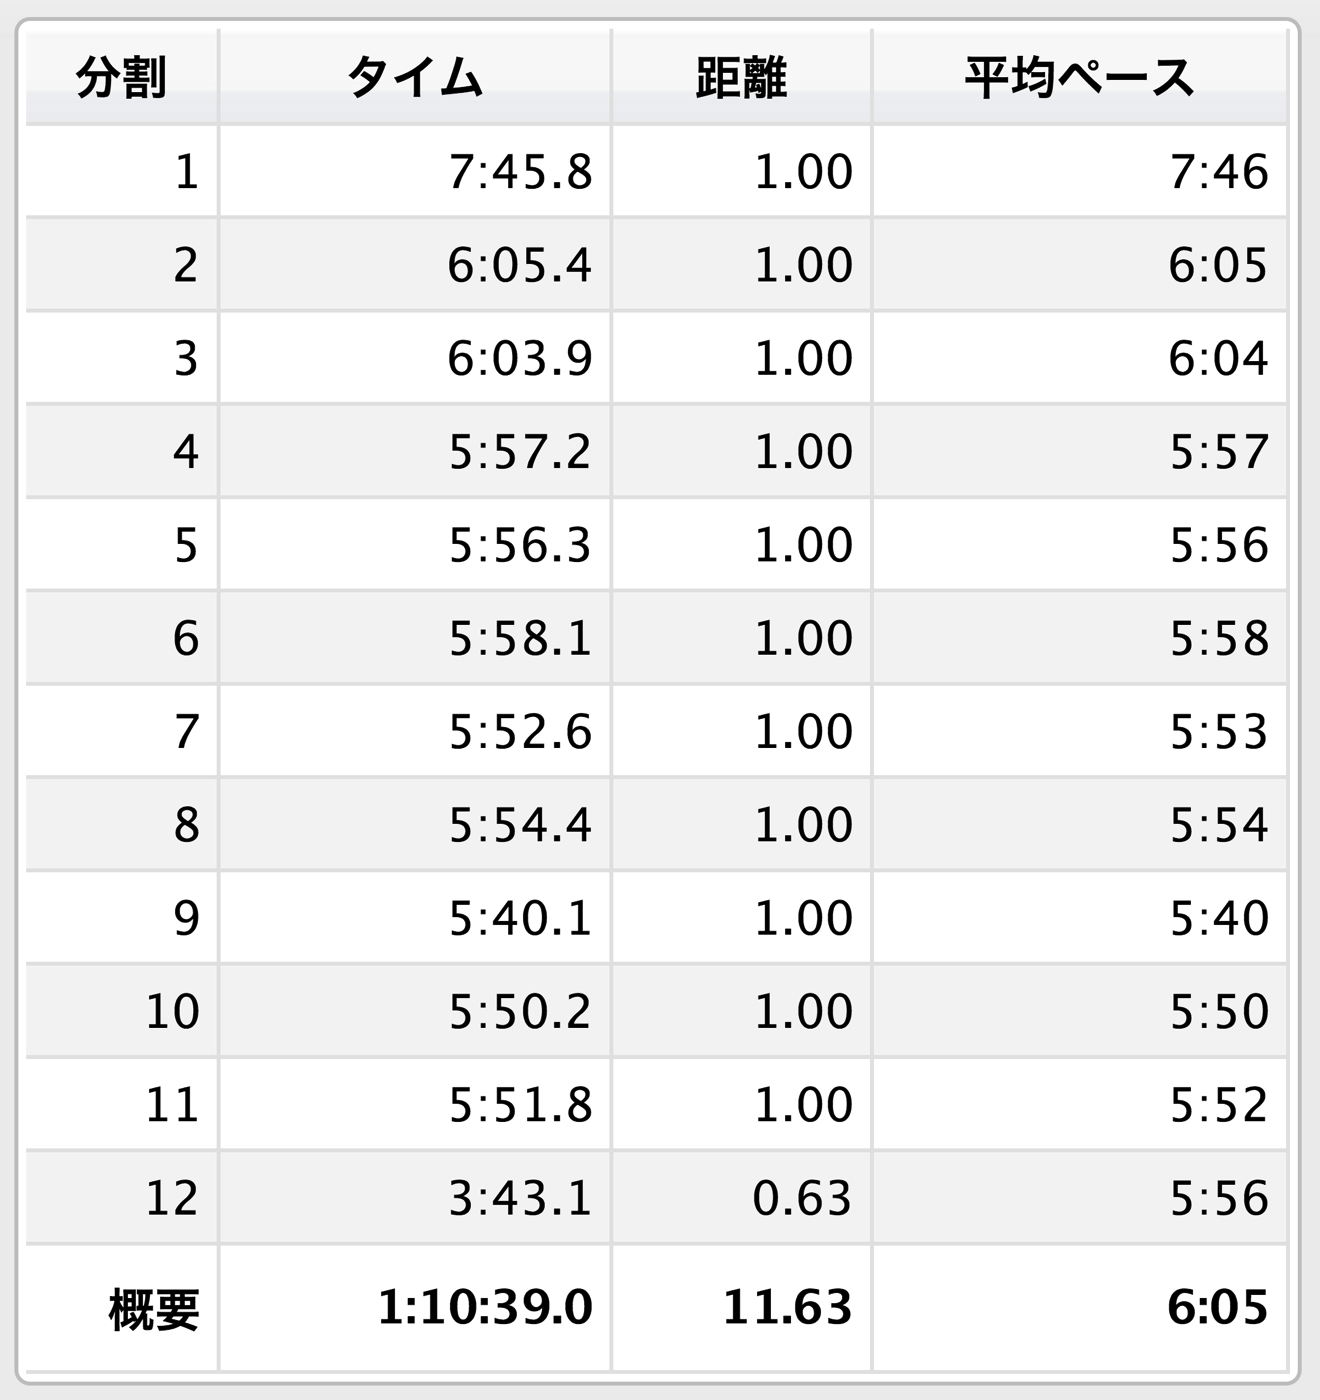 Garmin run data 20150624 img 01